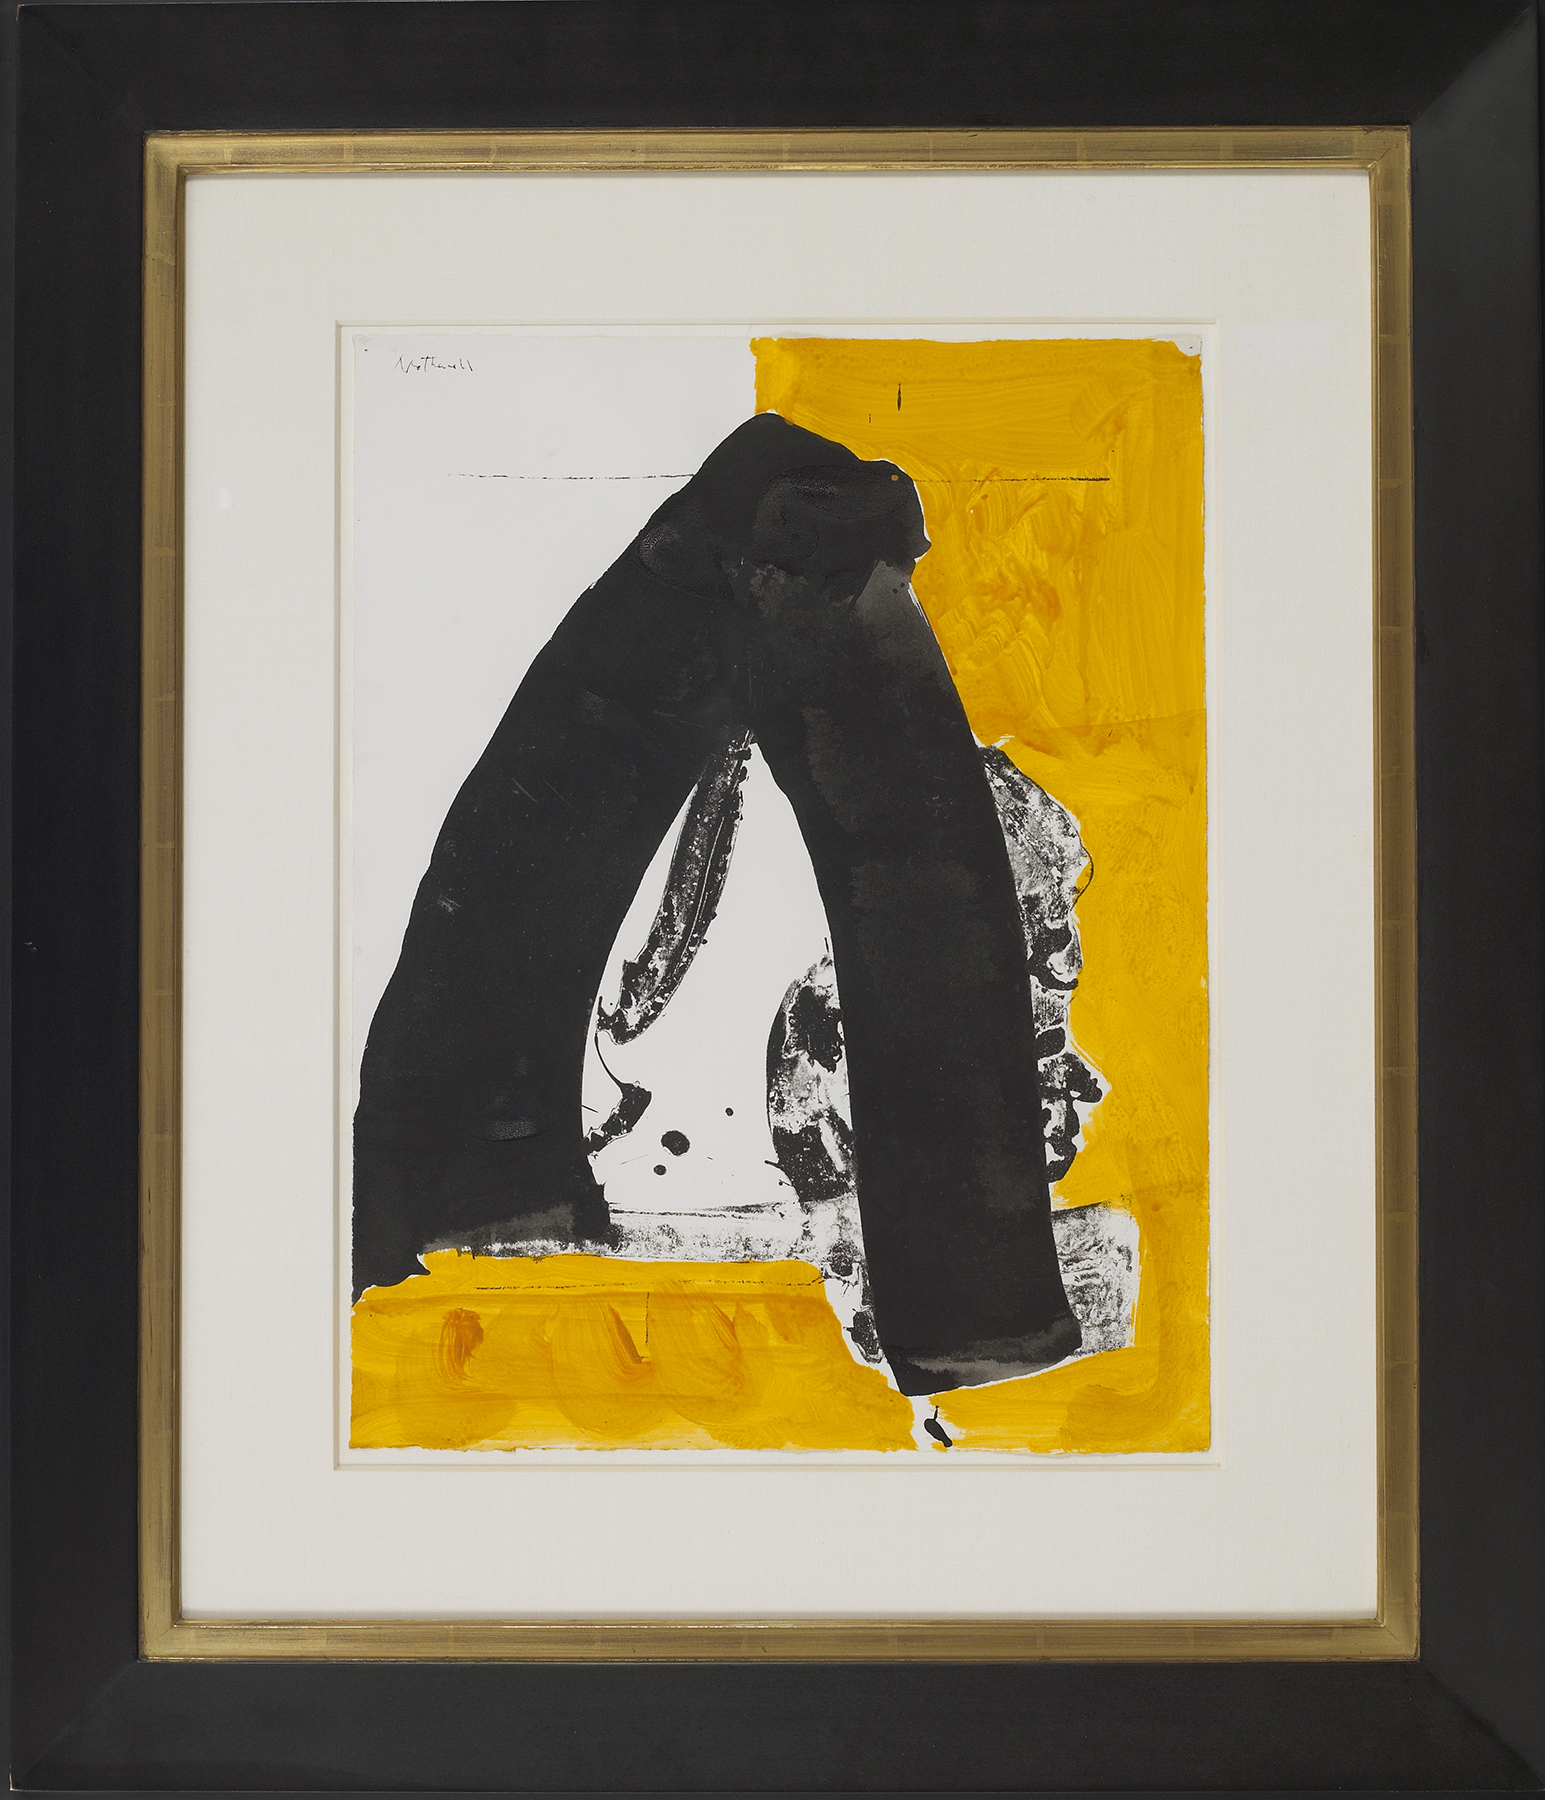 I.H. Series No. 22 (The Basque Suite), 1970  , acrylic, ink and lithograph on paper, 22 x 17 inches, signed at upper left